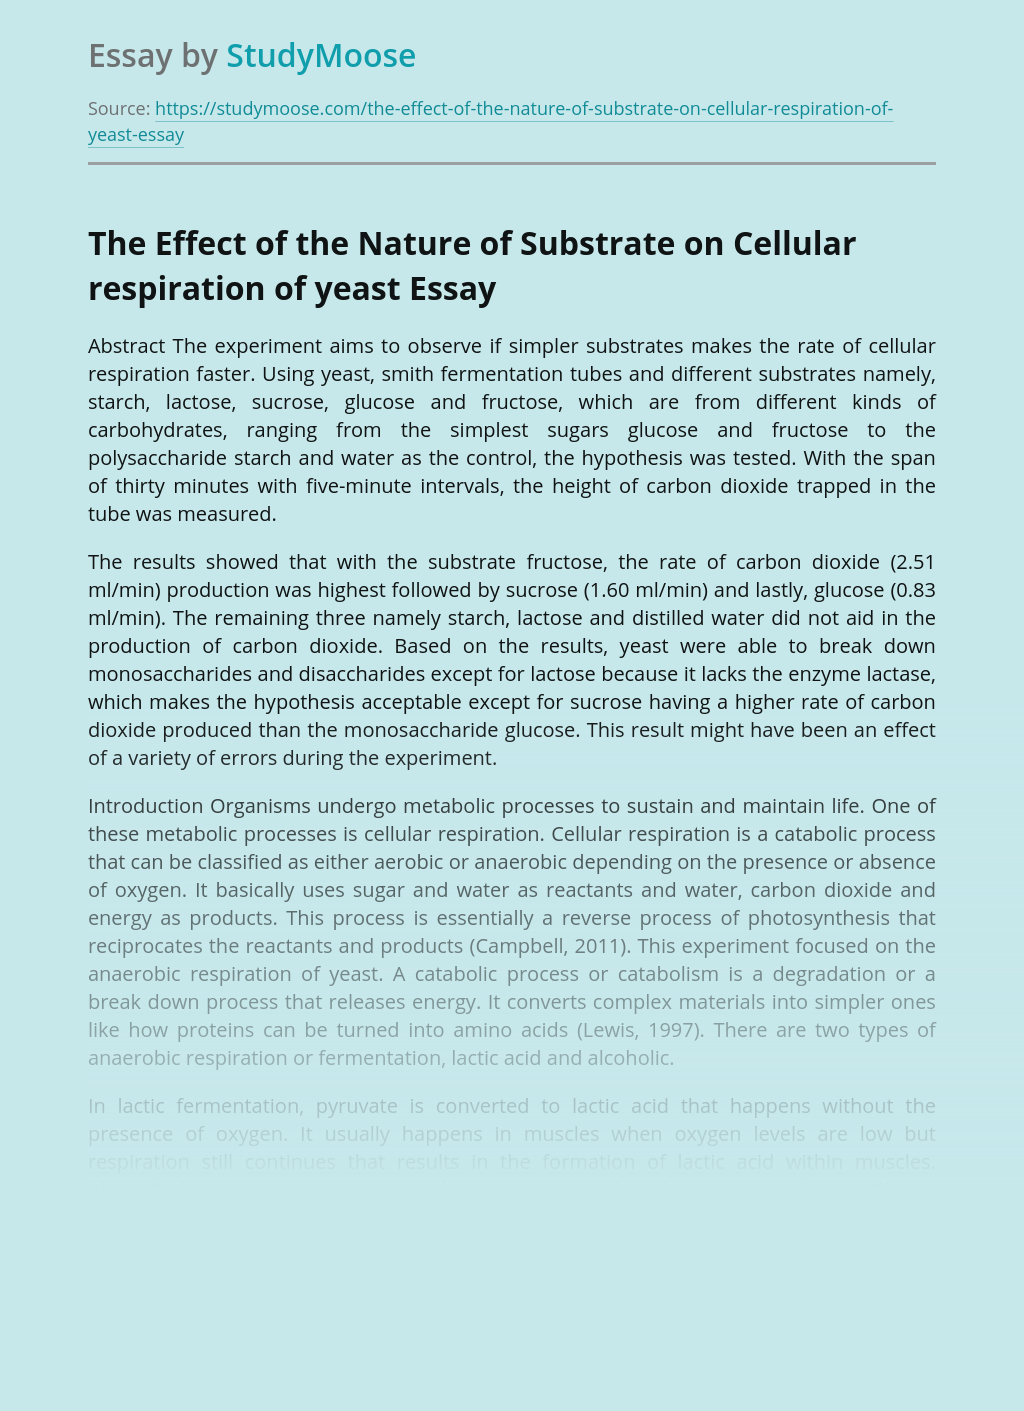 The Effect of the Nature of Substrate on Cellular respiration of yeast